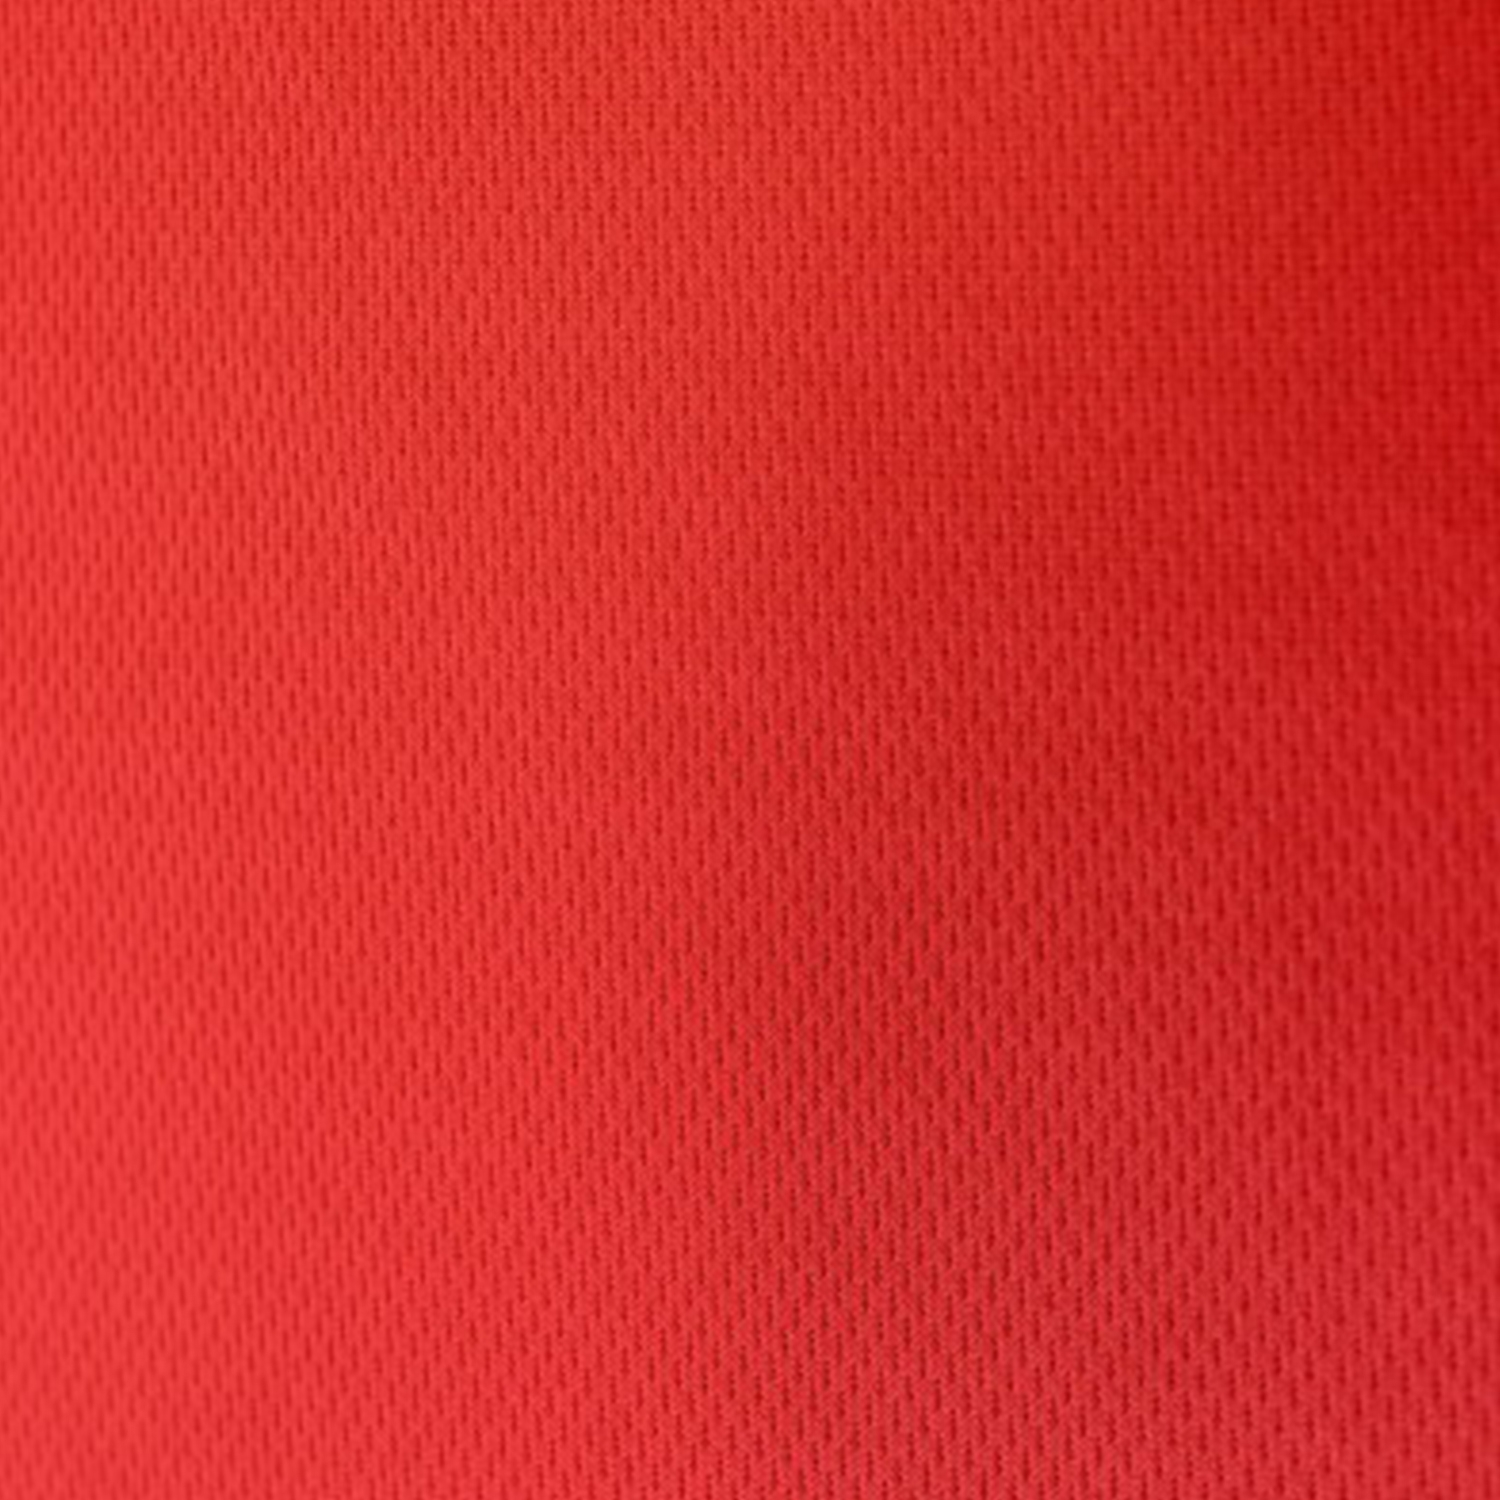 Red Flat Back Dimple Mesh Fabric